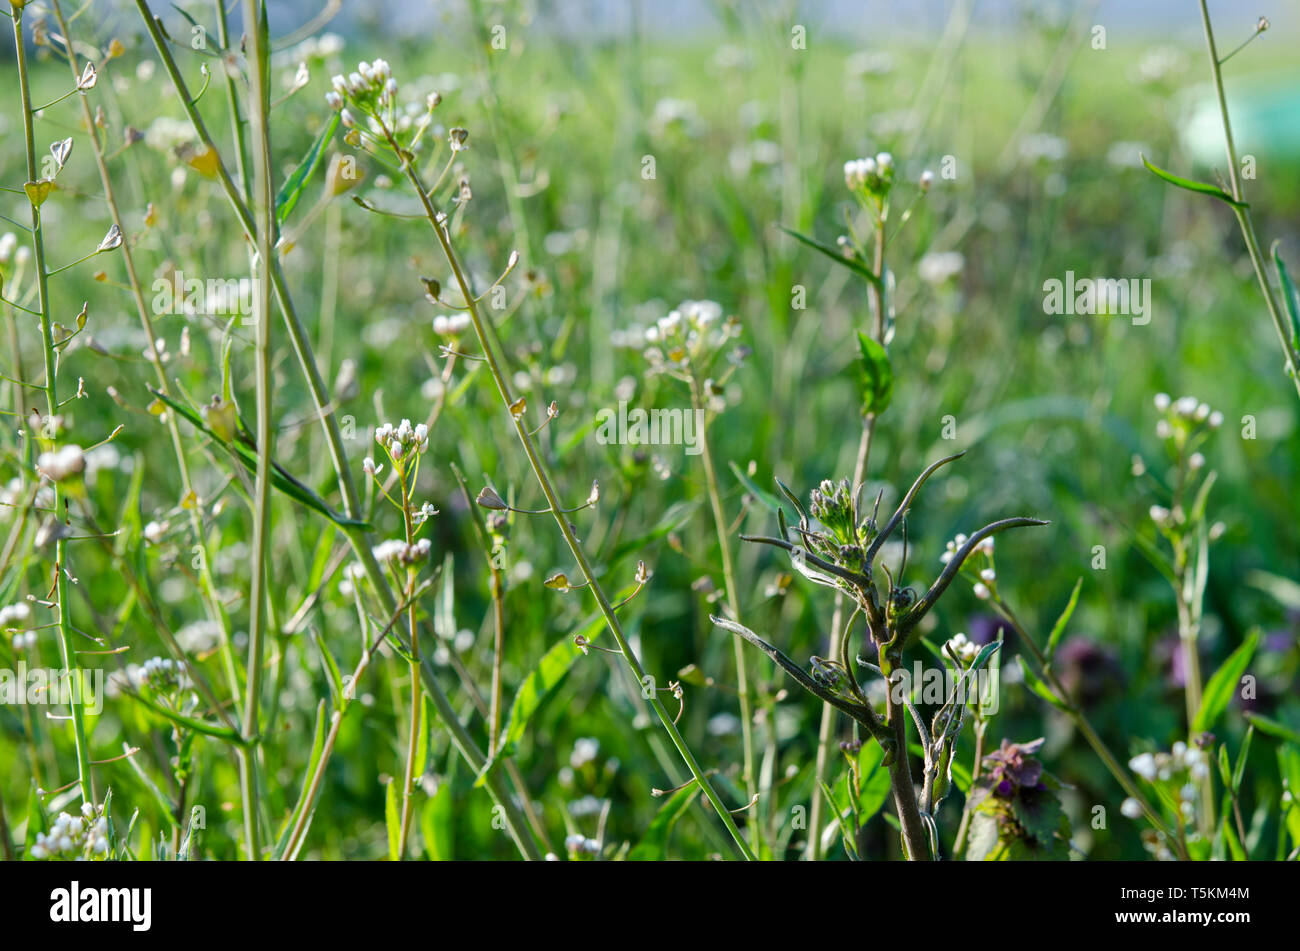 Medicinal plant-Shepherd's bag-grows in the spring garden under the sunlight - Stock Image